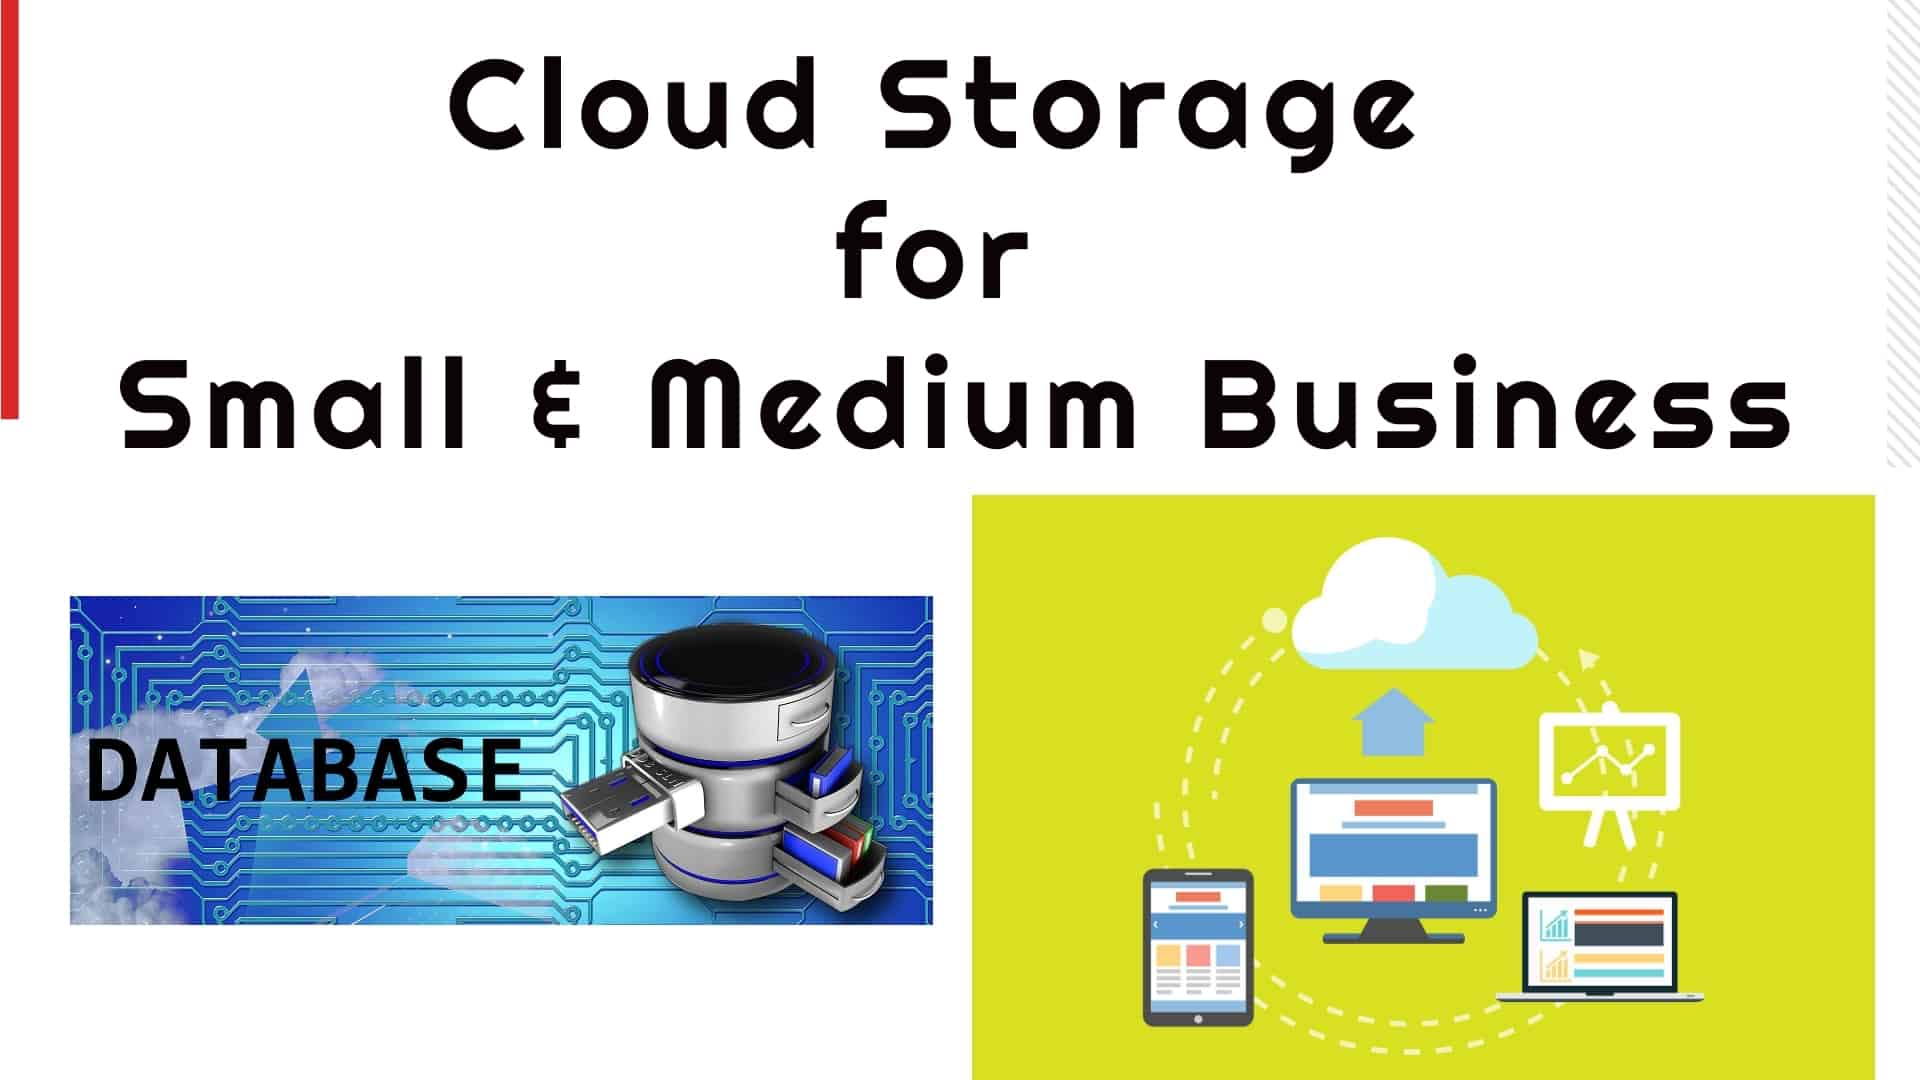 Enterprise Cloud Storage for small & medium business